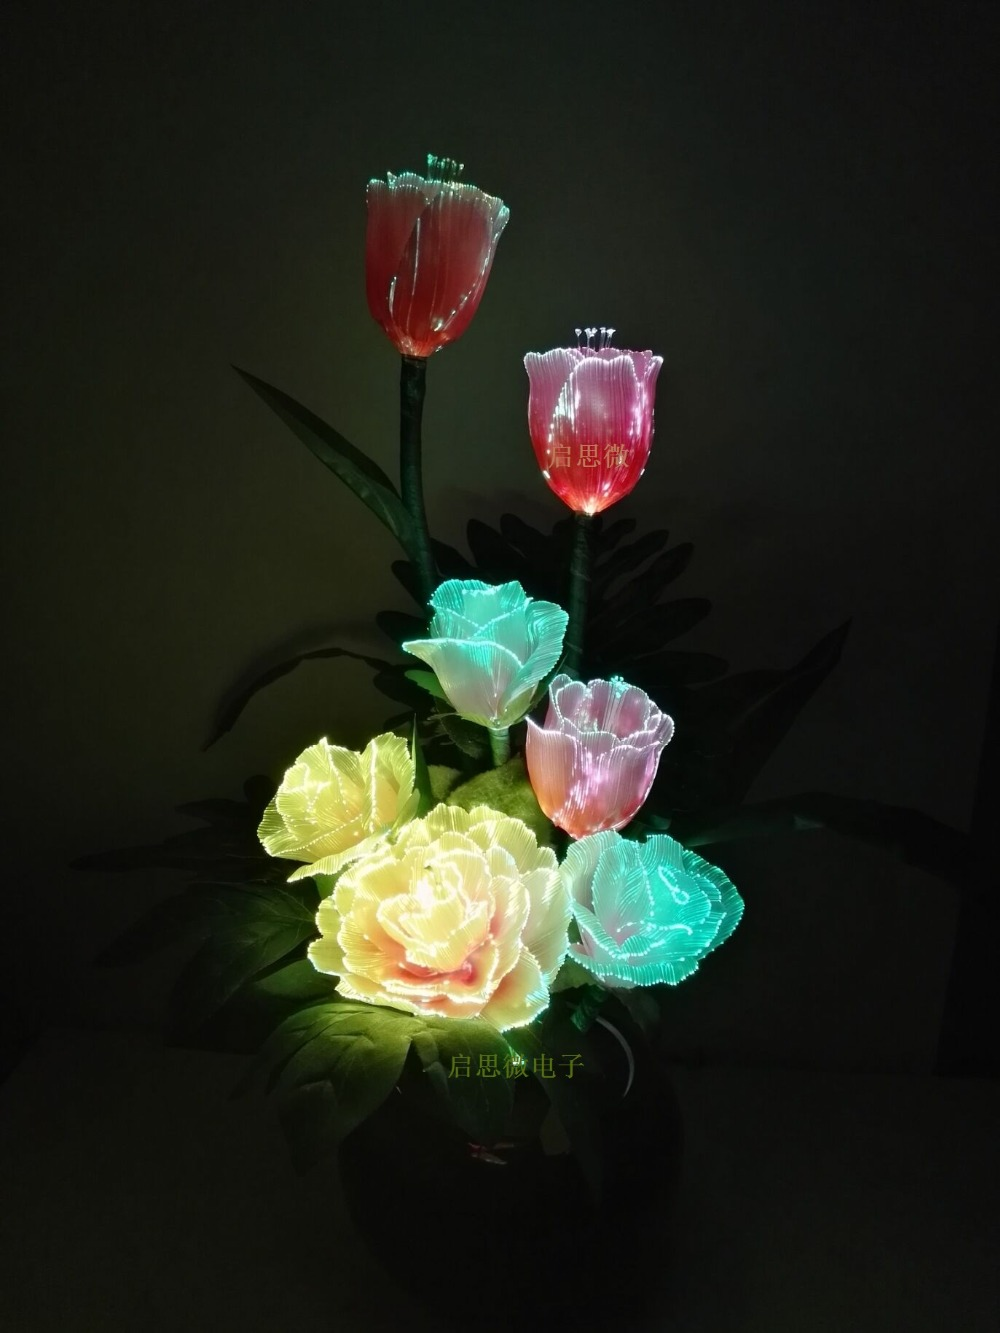 Led fiber optic lights Artificial Flowers Silk flower European Fall Vivid Peony Rose Tulips Fake Leaf Creative Led lamp louis garden artificial flowers fake rose in picket fence pot pack small potted plant